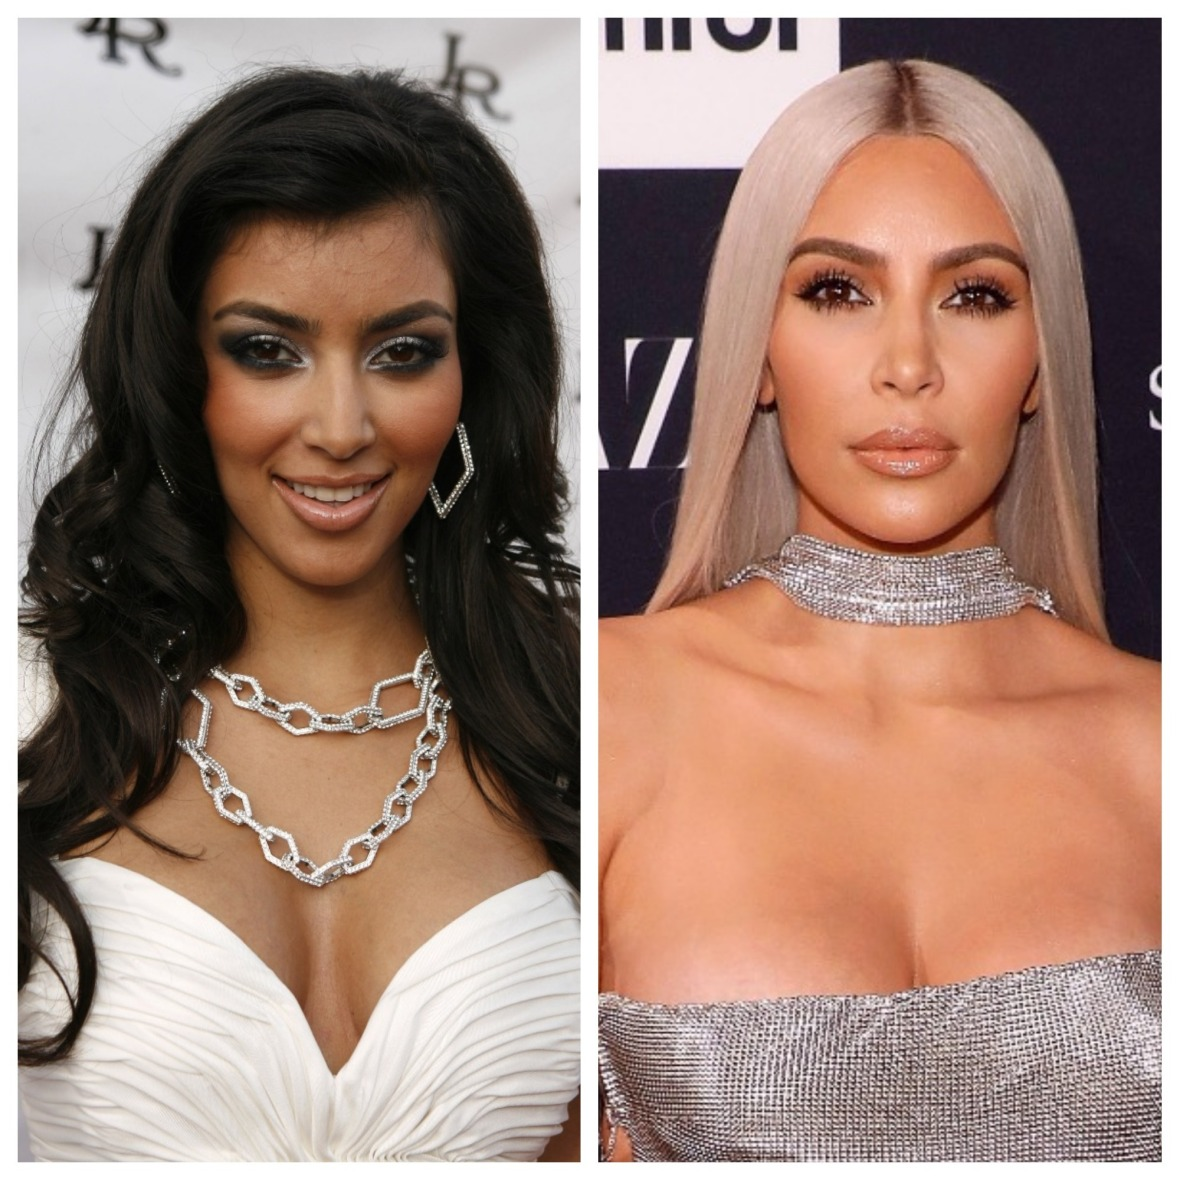 kim kardashian before and after getty images